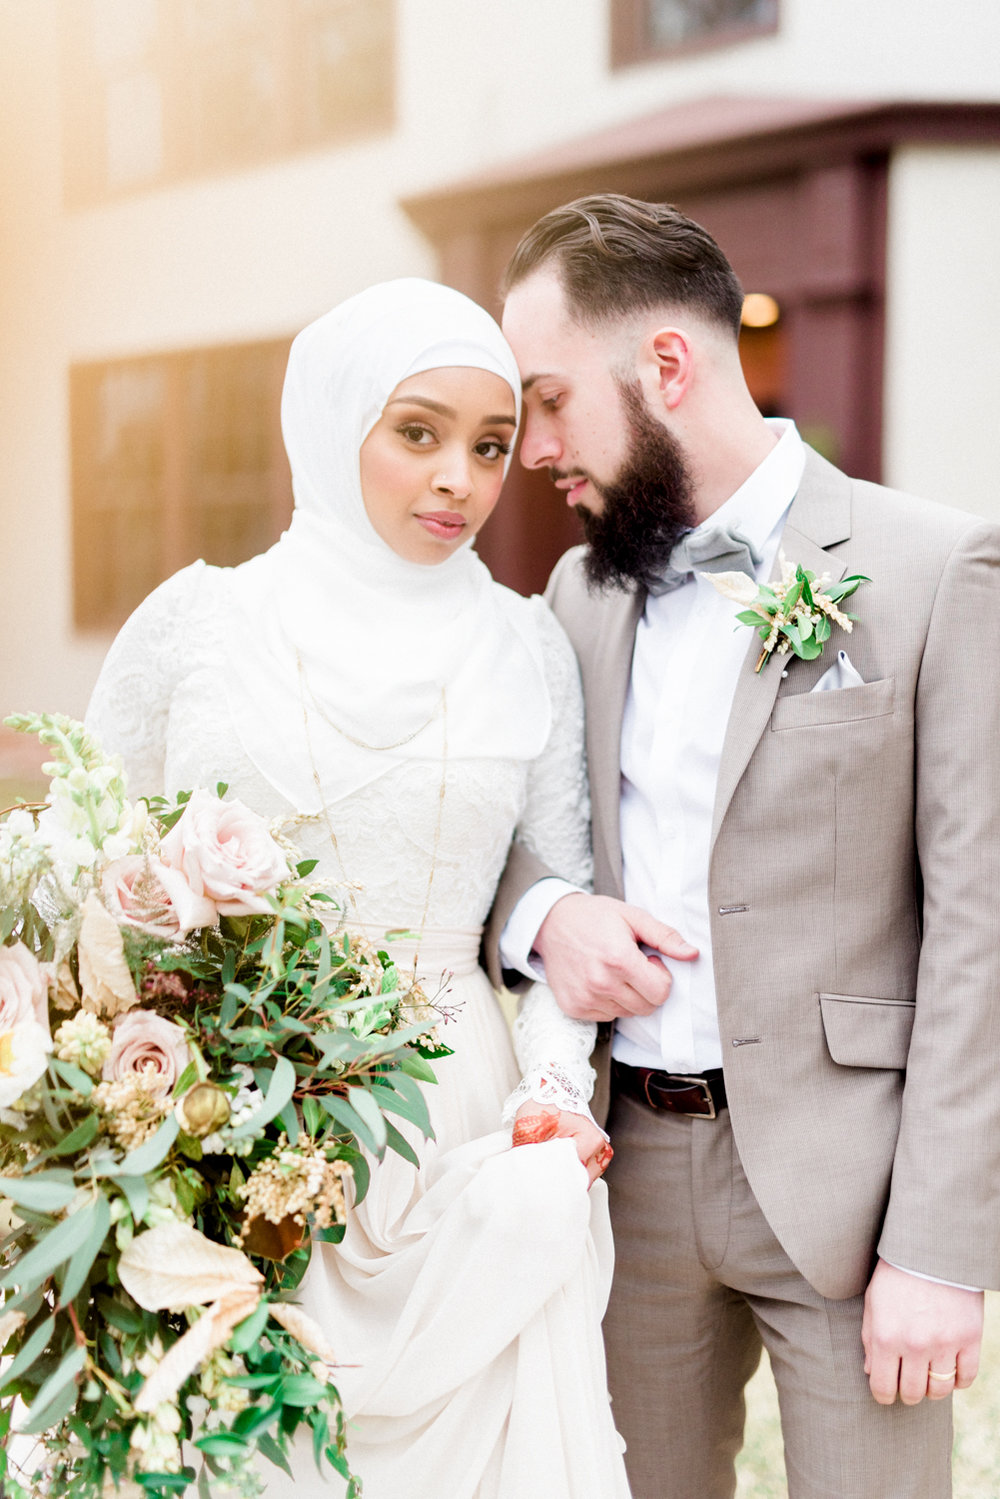 haley-richter-photography-hotel-du-village-wedding-new-hope-pa-muslim-69.jpg